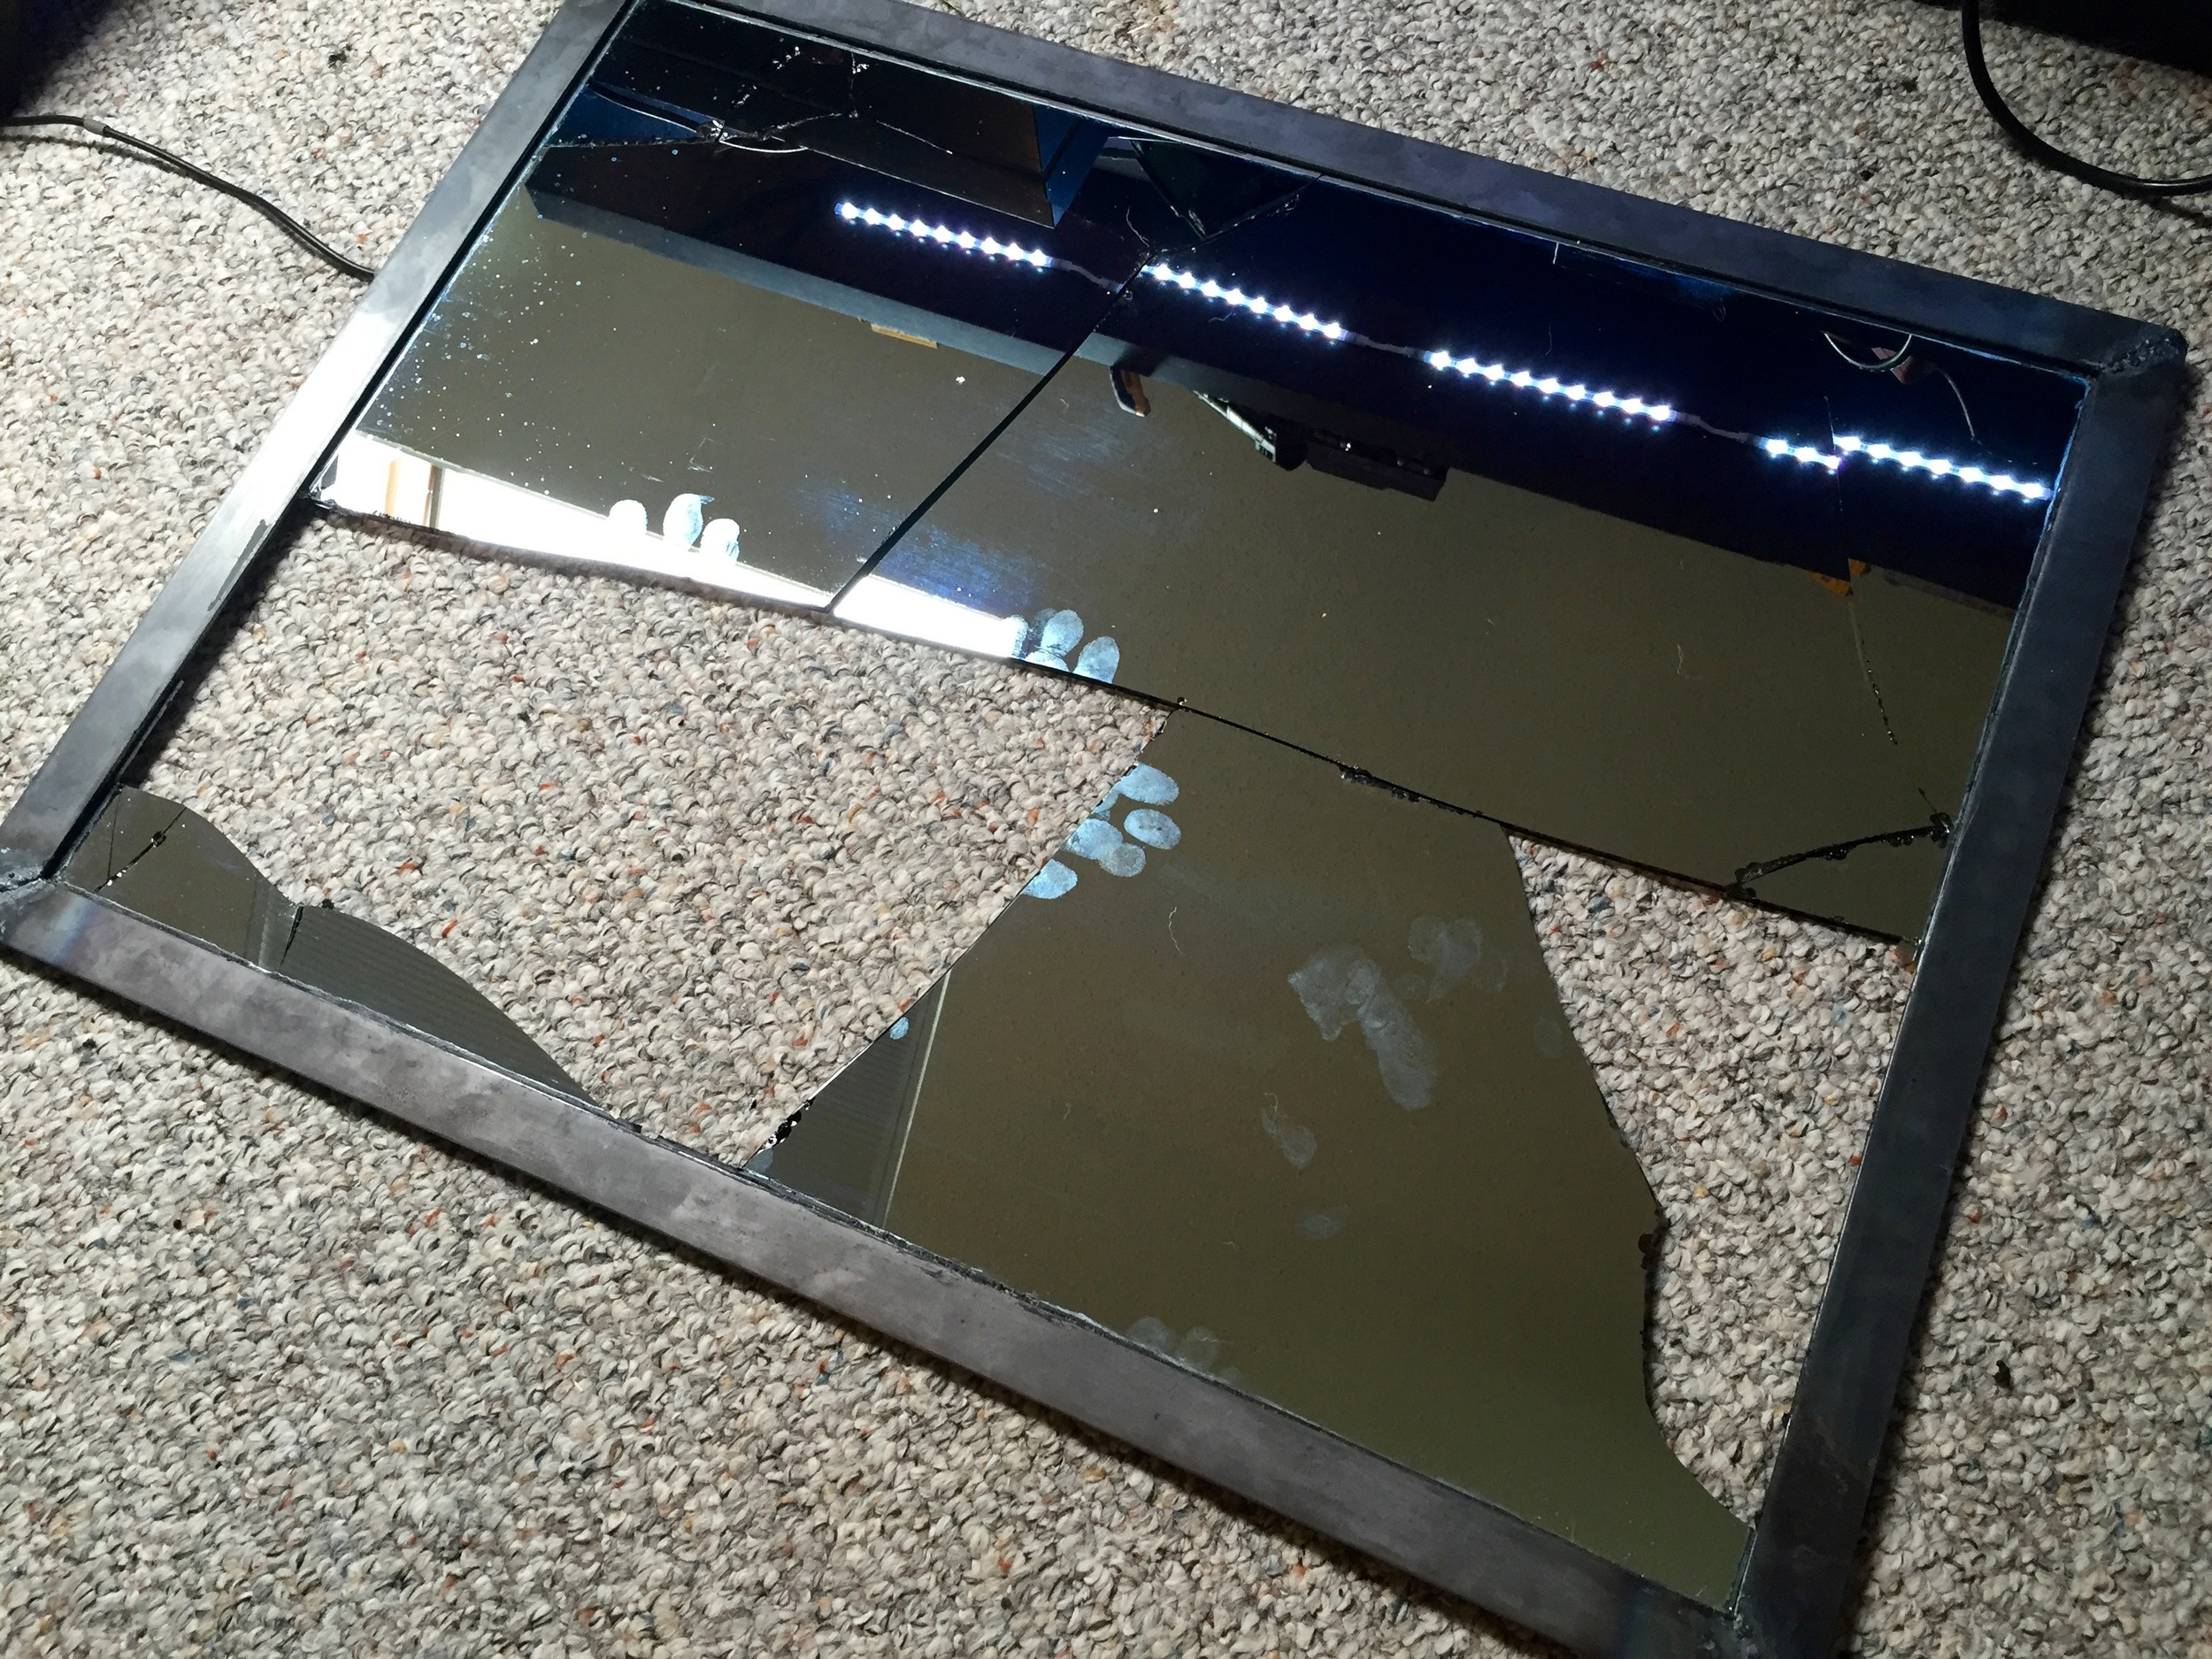 The old shattered mirror glass still attached to the metal frame.